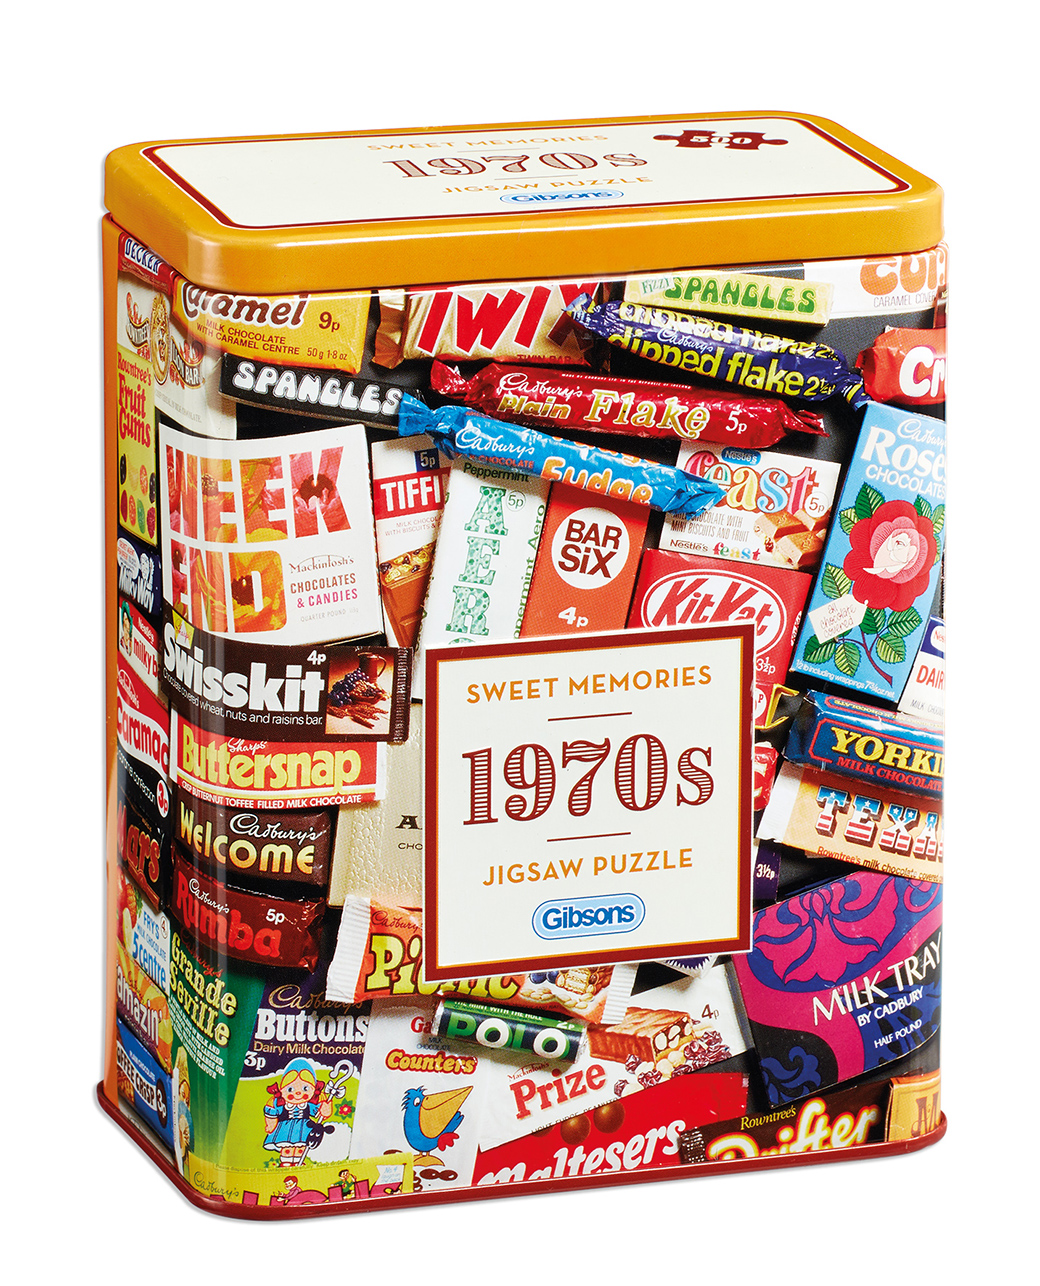 1970s Sweet Memories Tin